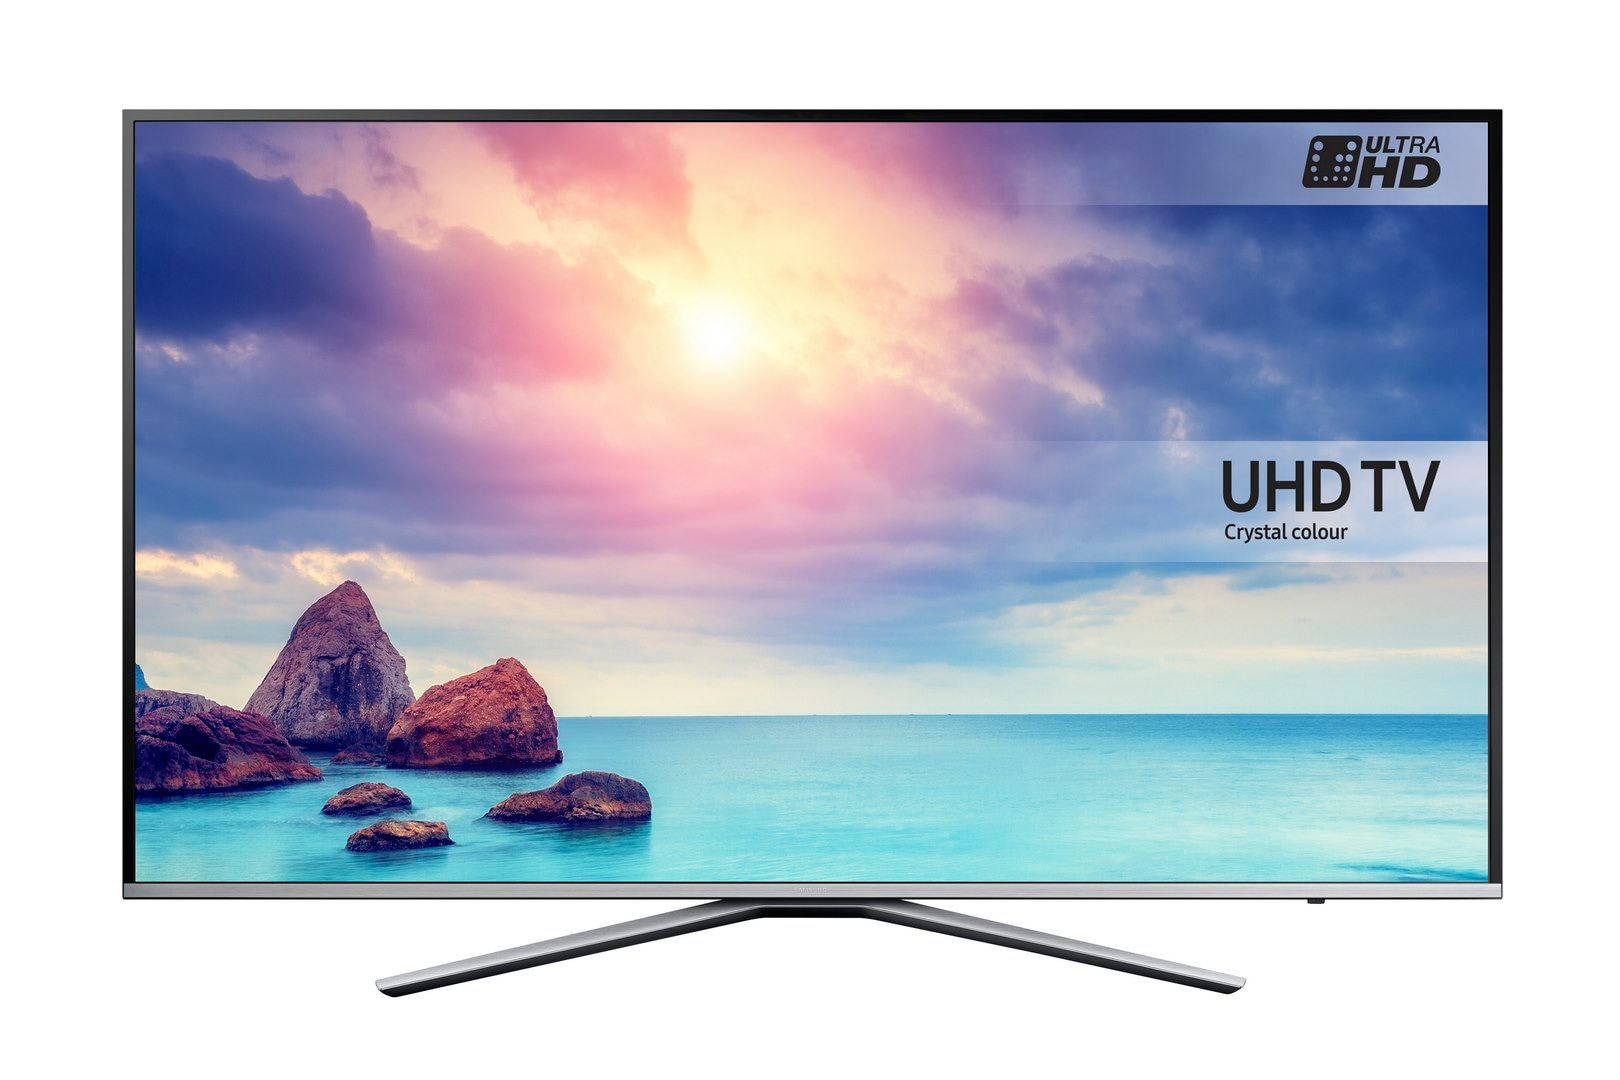 6-Series UHD TV UE49KU6400